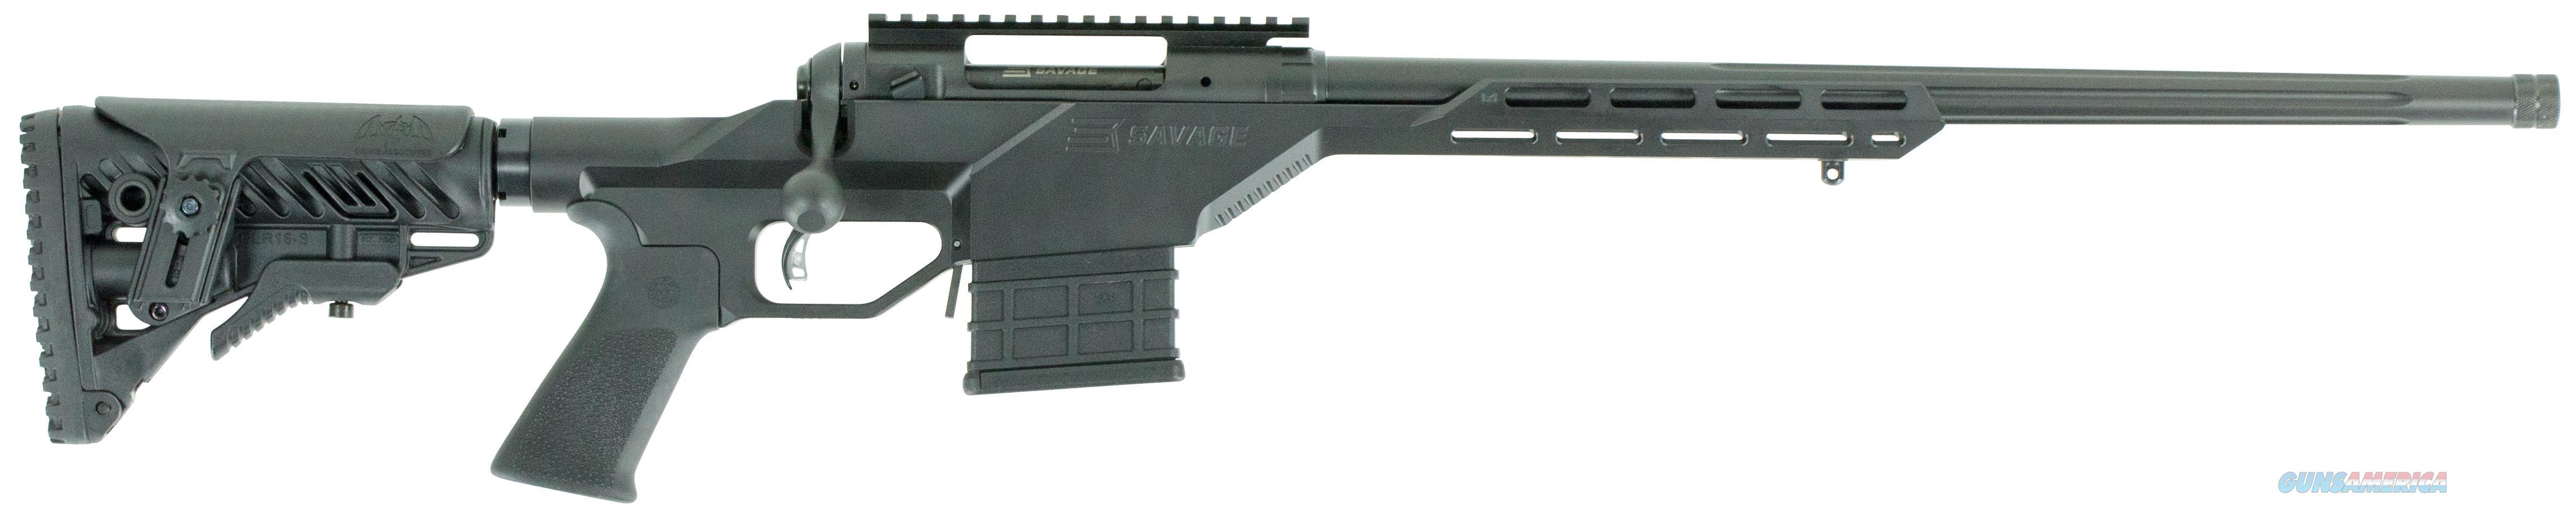 Savage Arms 10Ba Stealth 308 20B 10Rd 22637  Guns > Rifles > S Misc Rifles